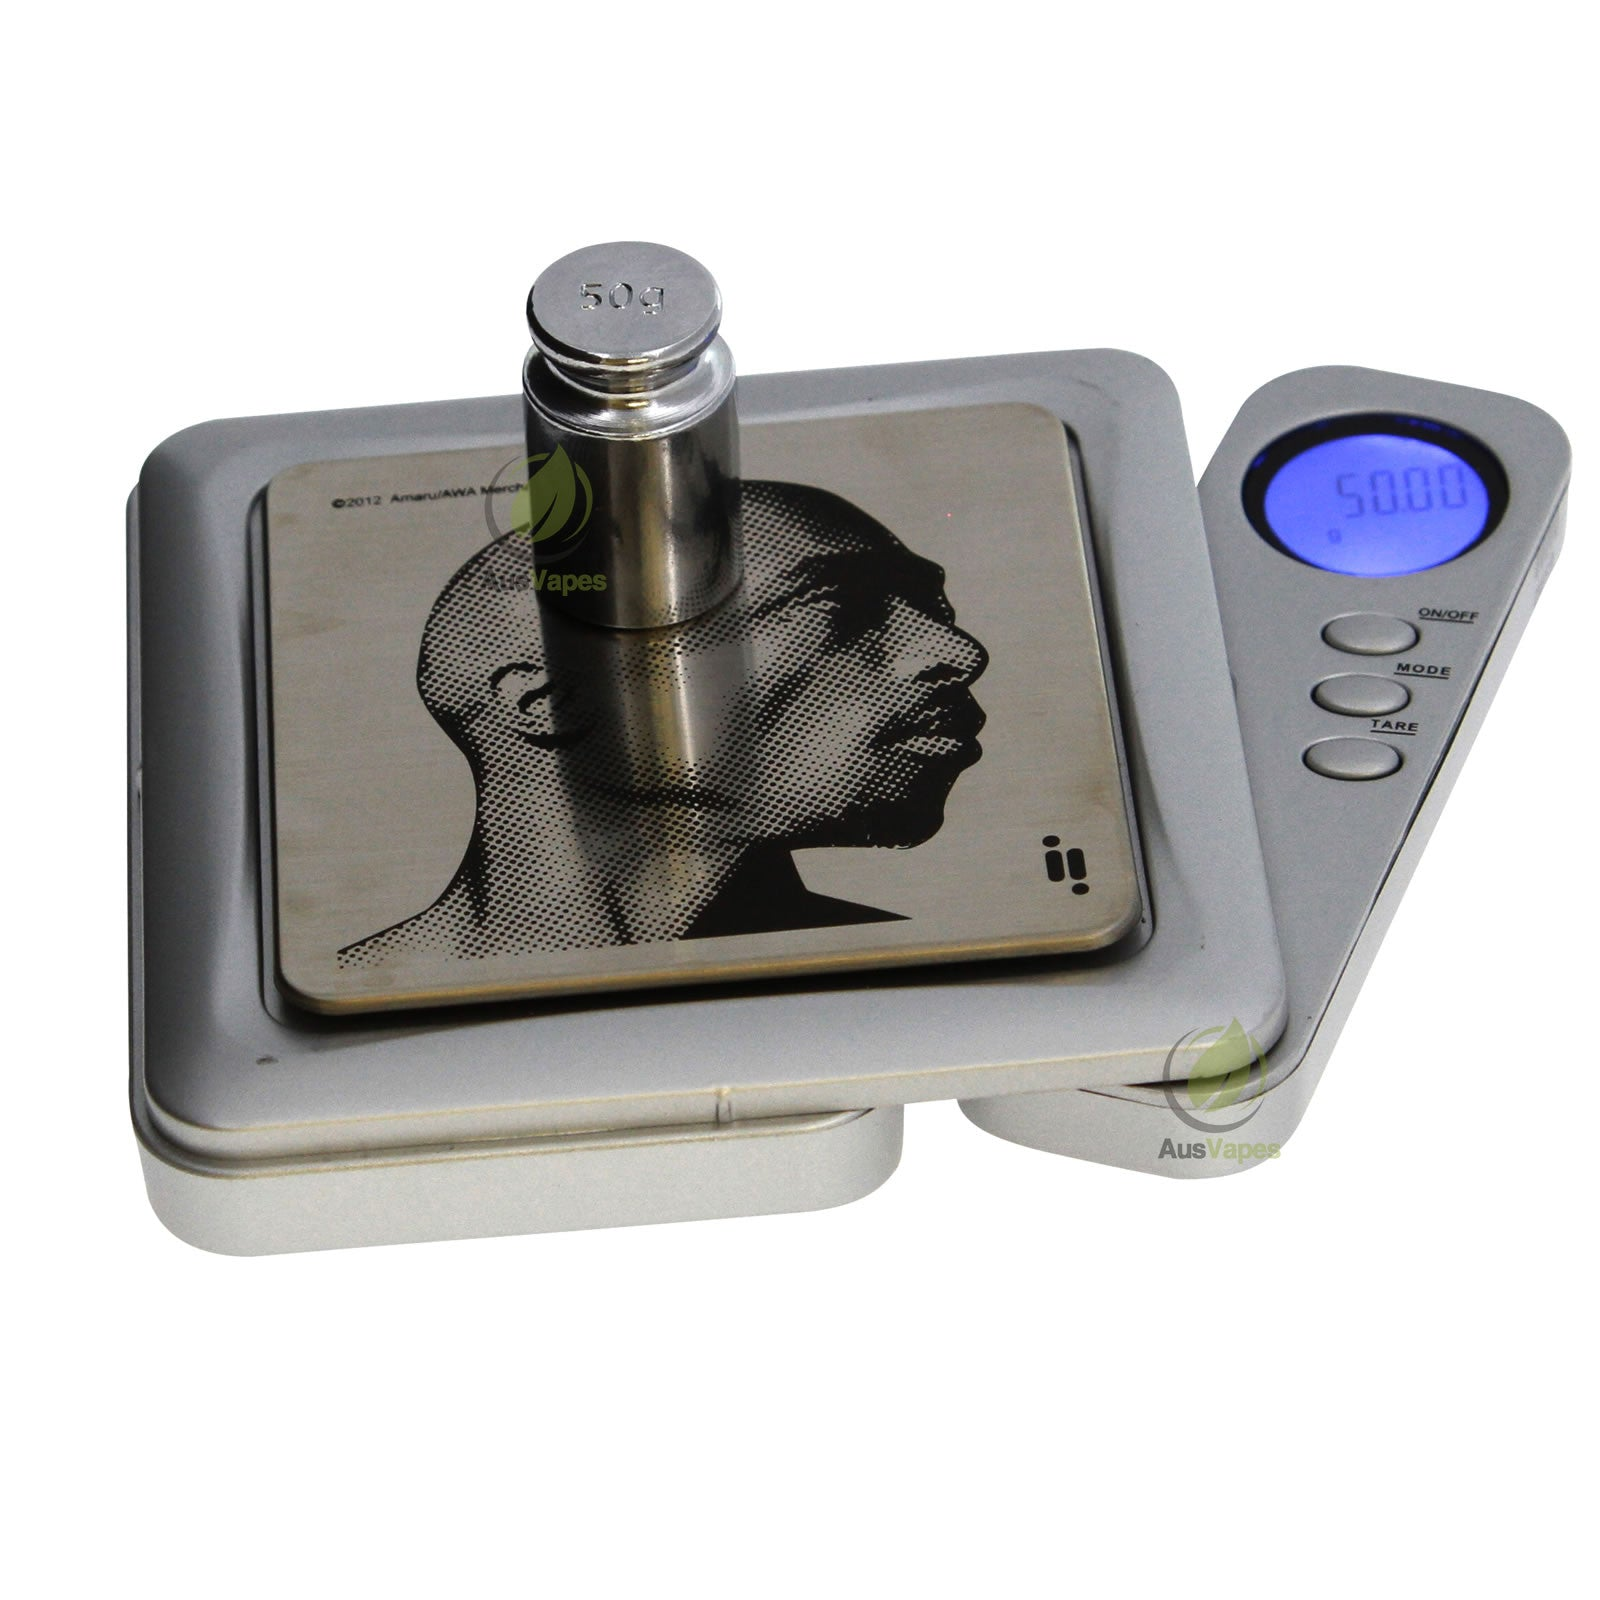 DISCONTINUED Infyniti Tupac Panther Digital Pocket Scale 50g x 0.01g